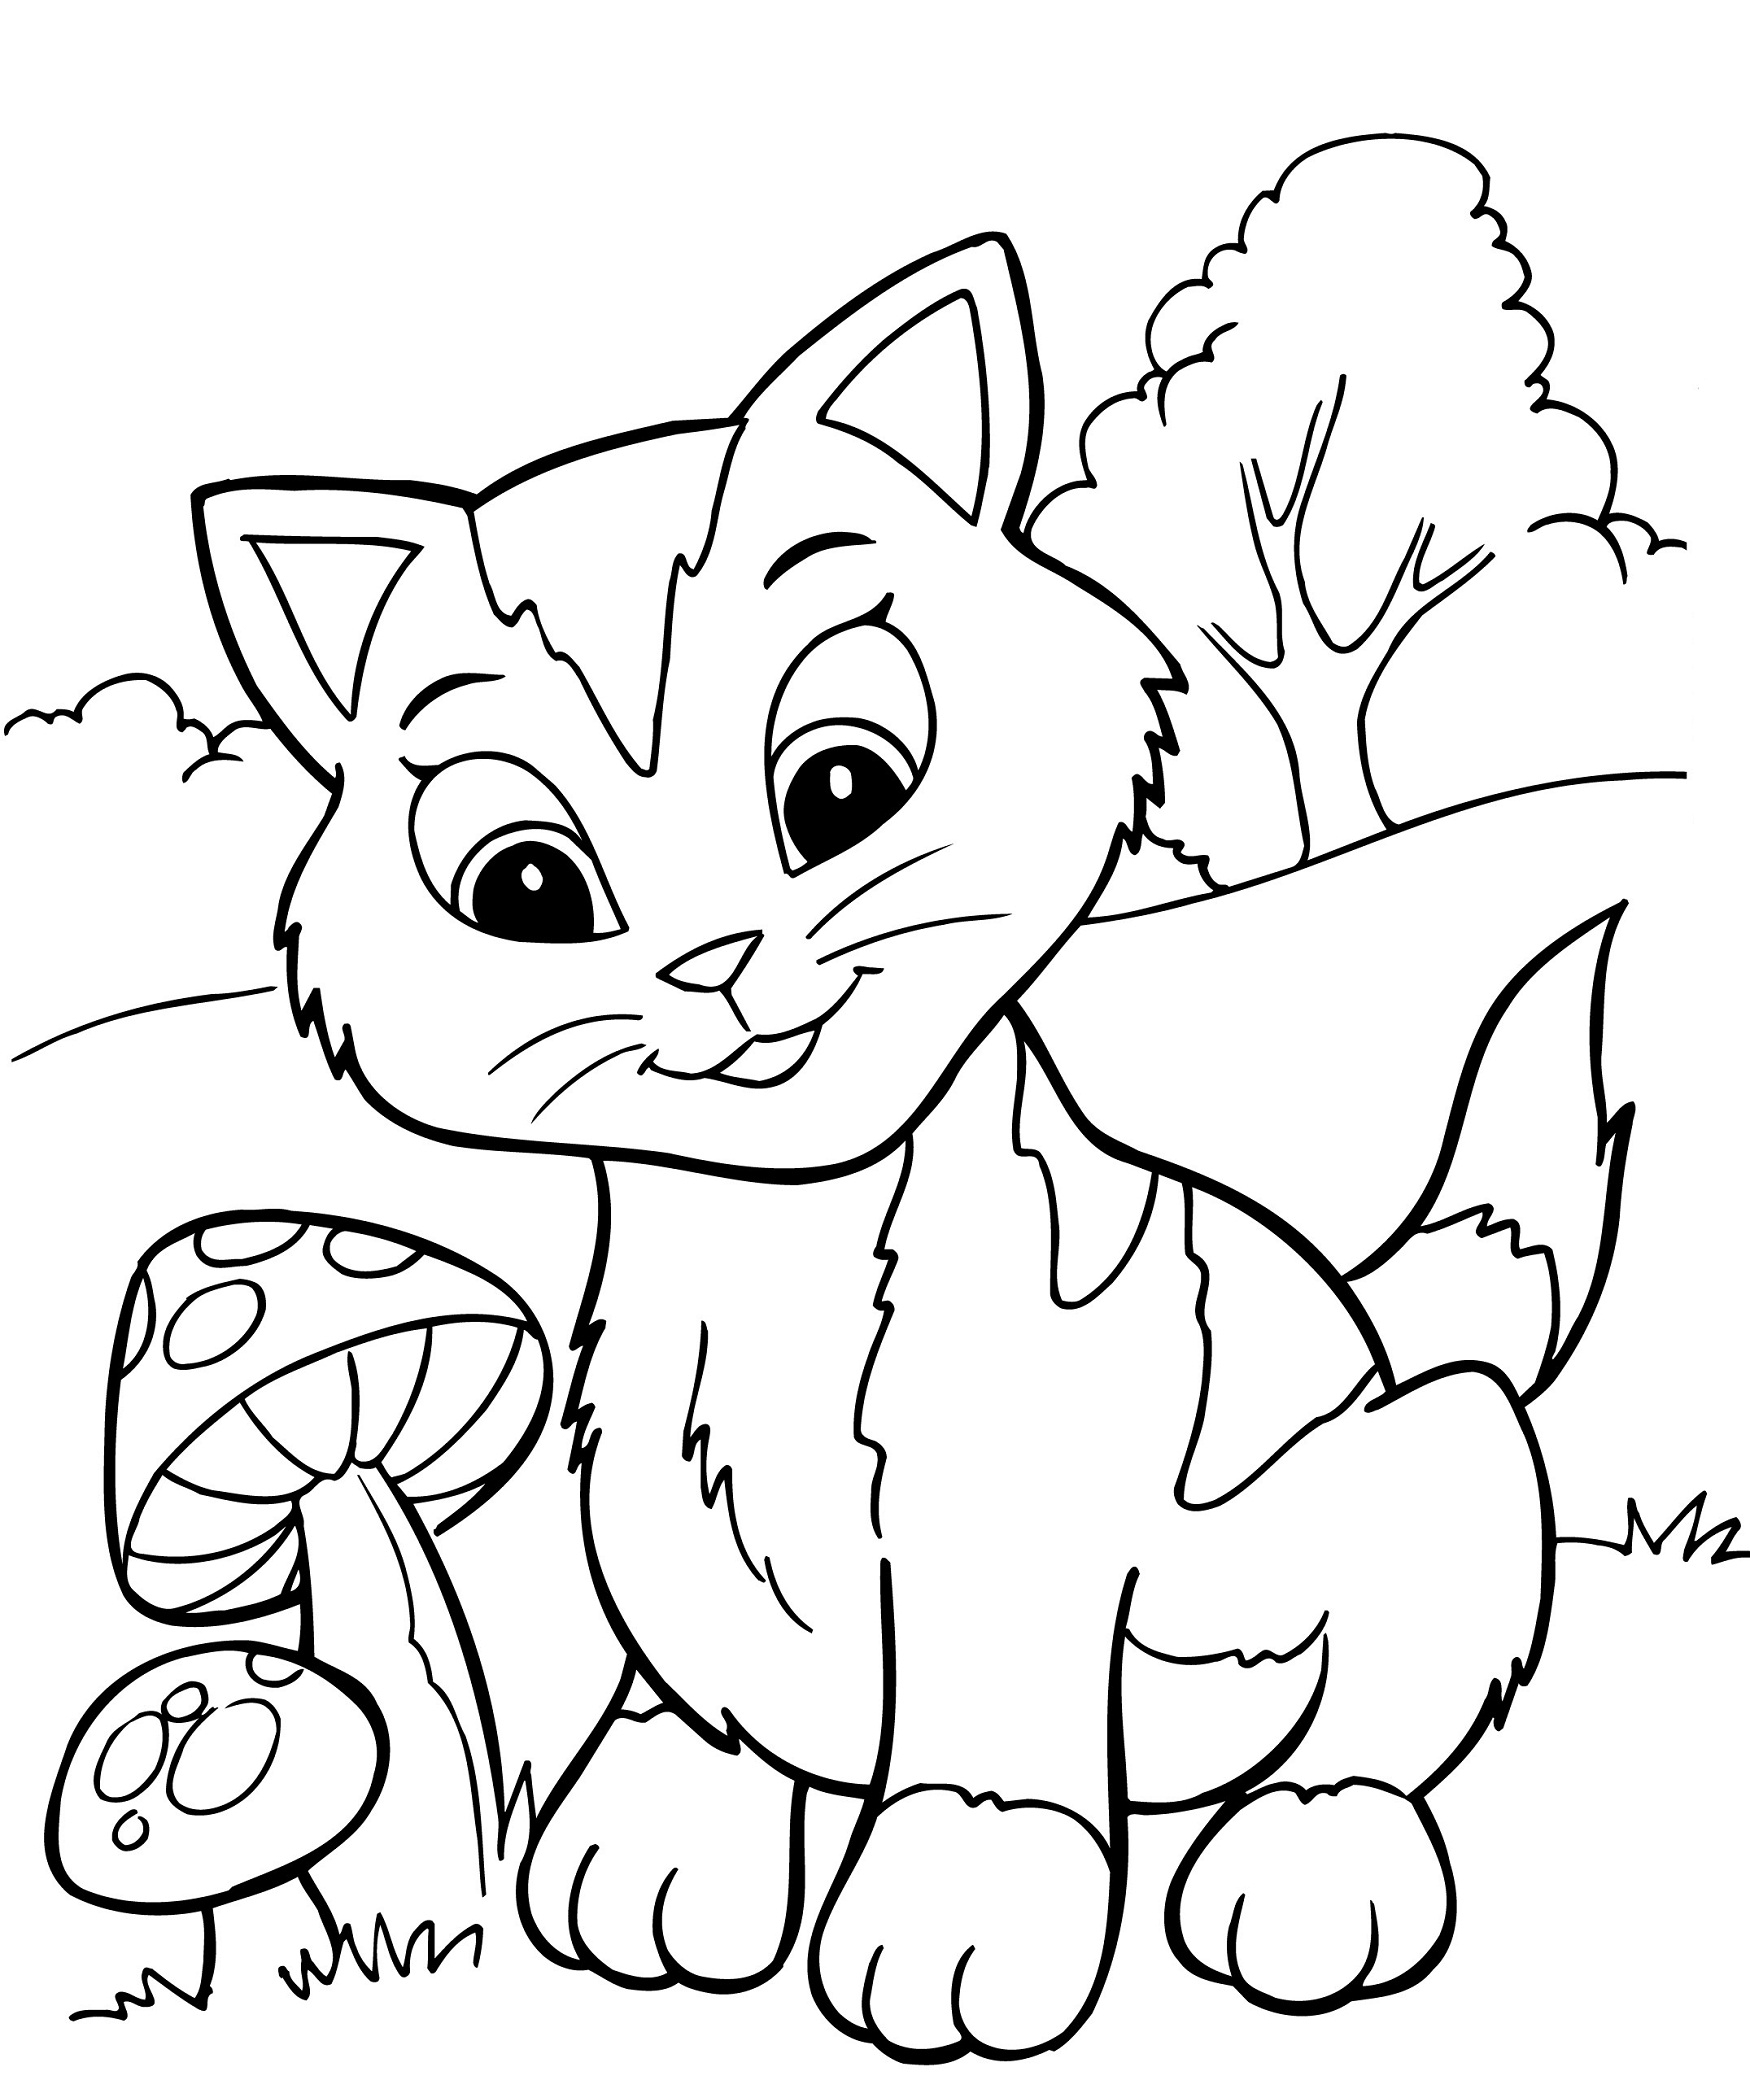 toddler kids coloring pages pdf coloring pages free coloring pages for toddlers resume kids pages coloring toddler pdf